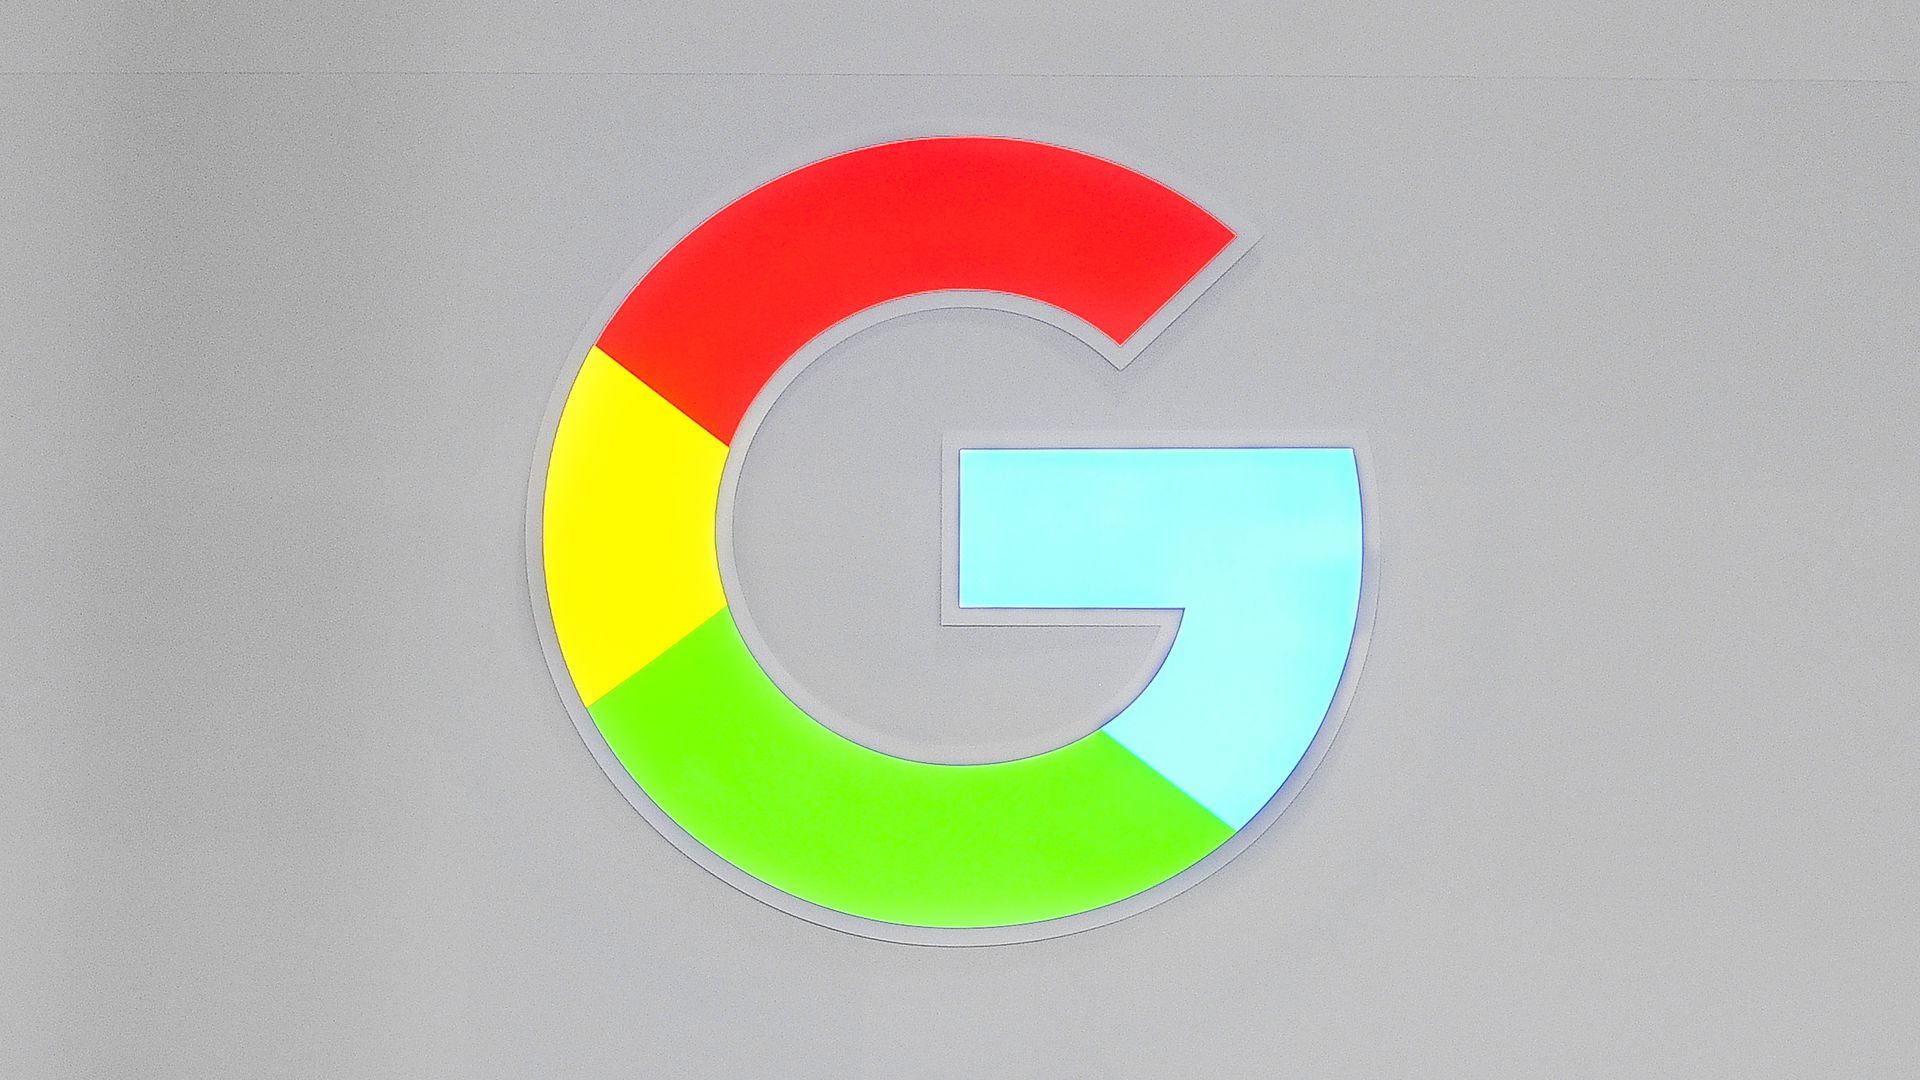 Google diversity report shows small gains in retention